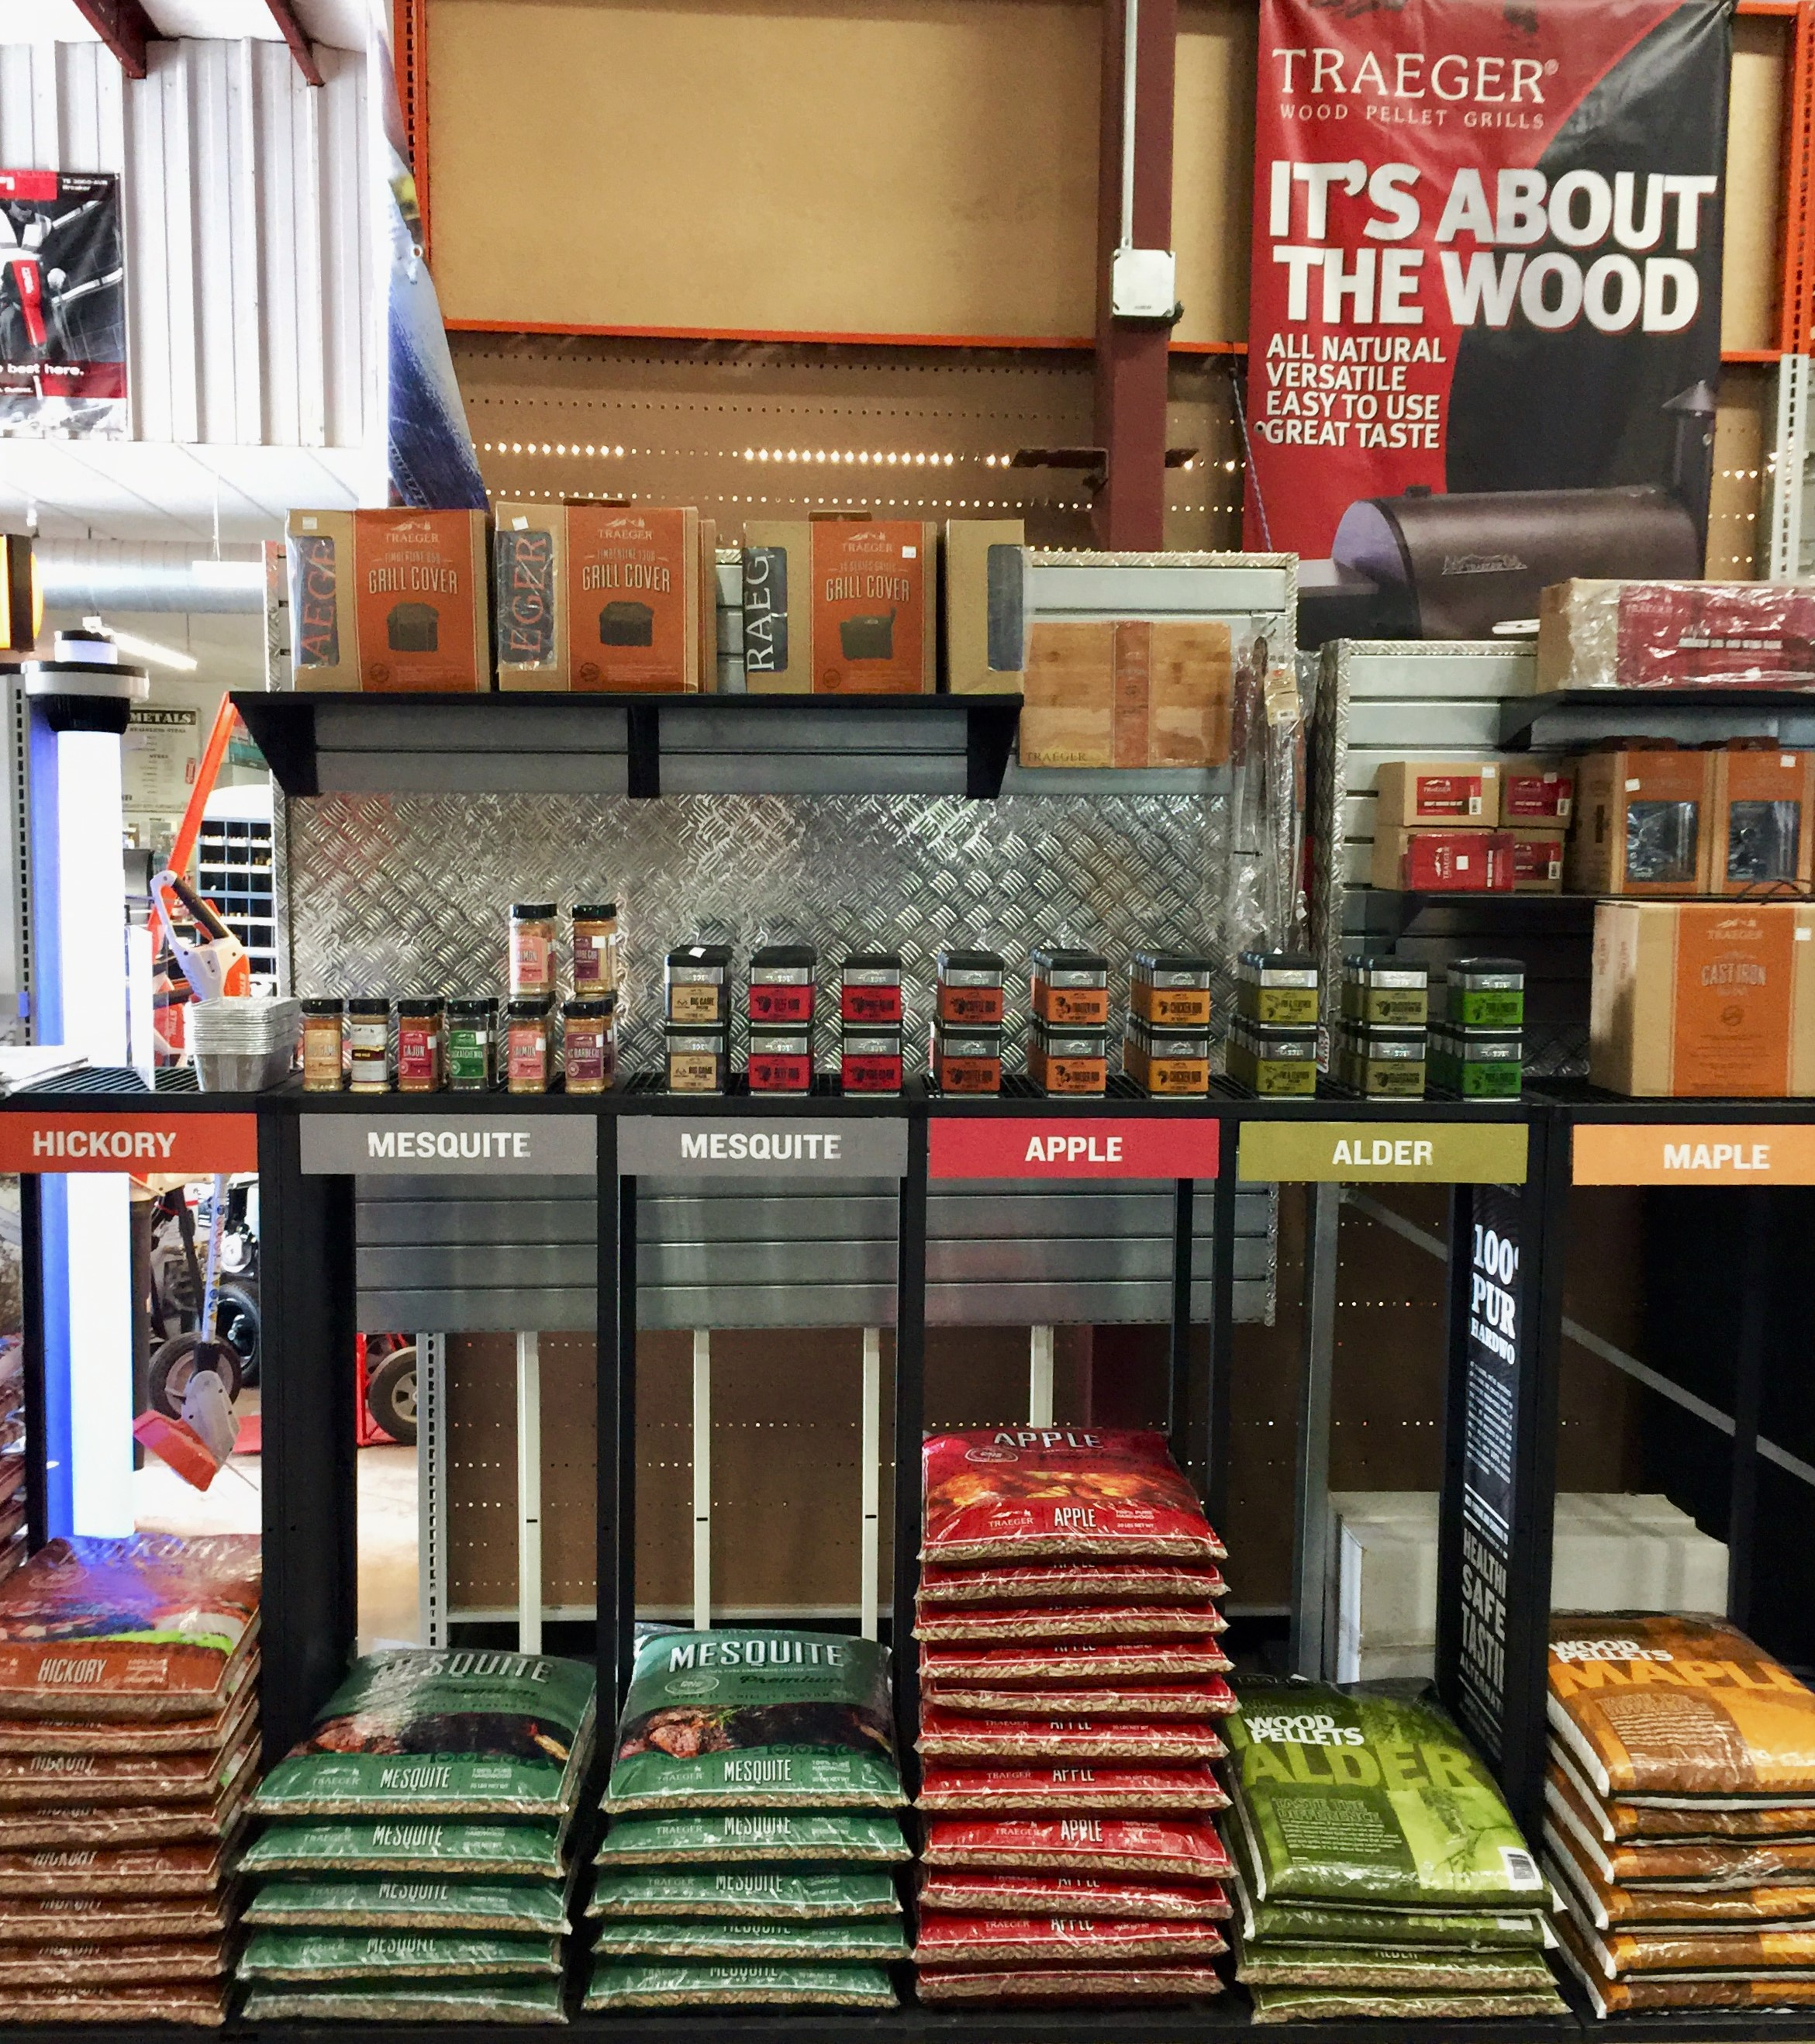 Traeger Bbq Wood Pellets Our Premium Wood Pellets Are The